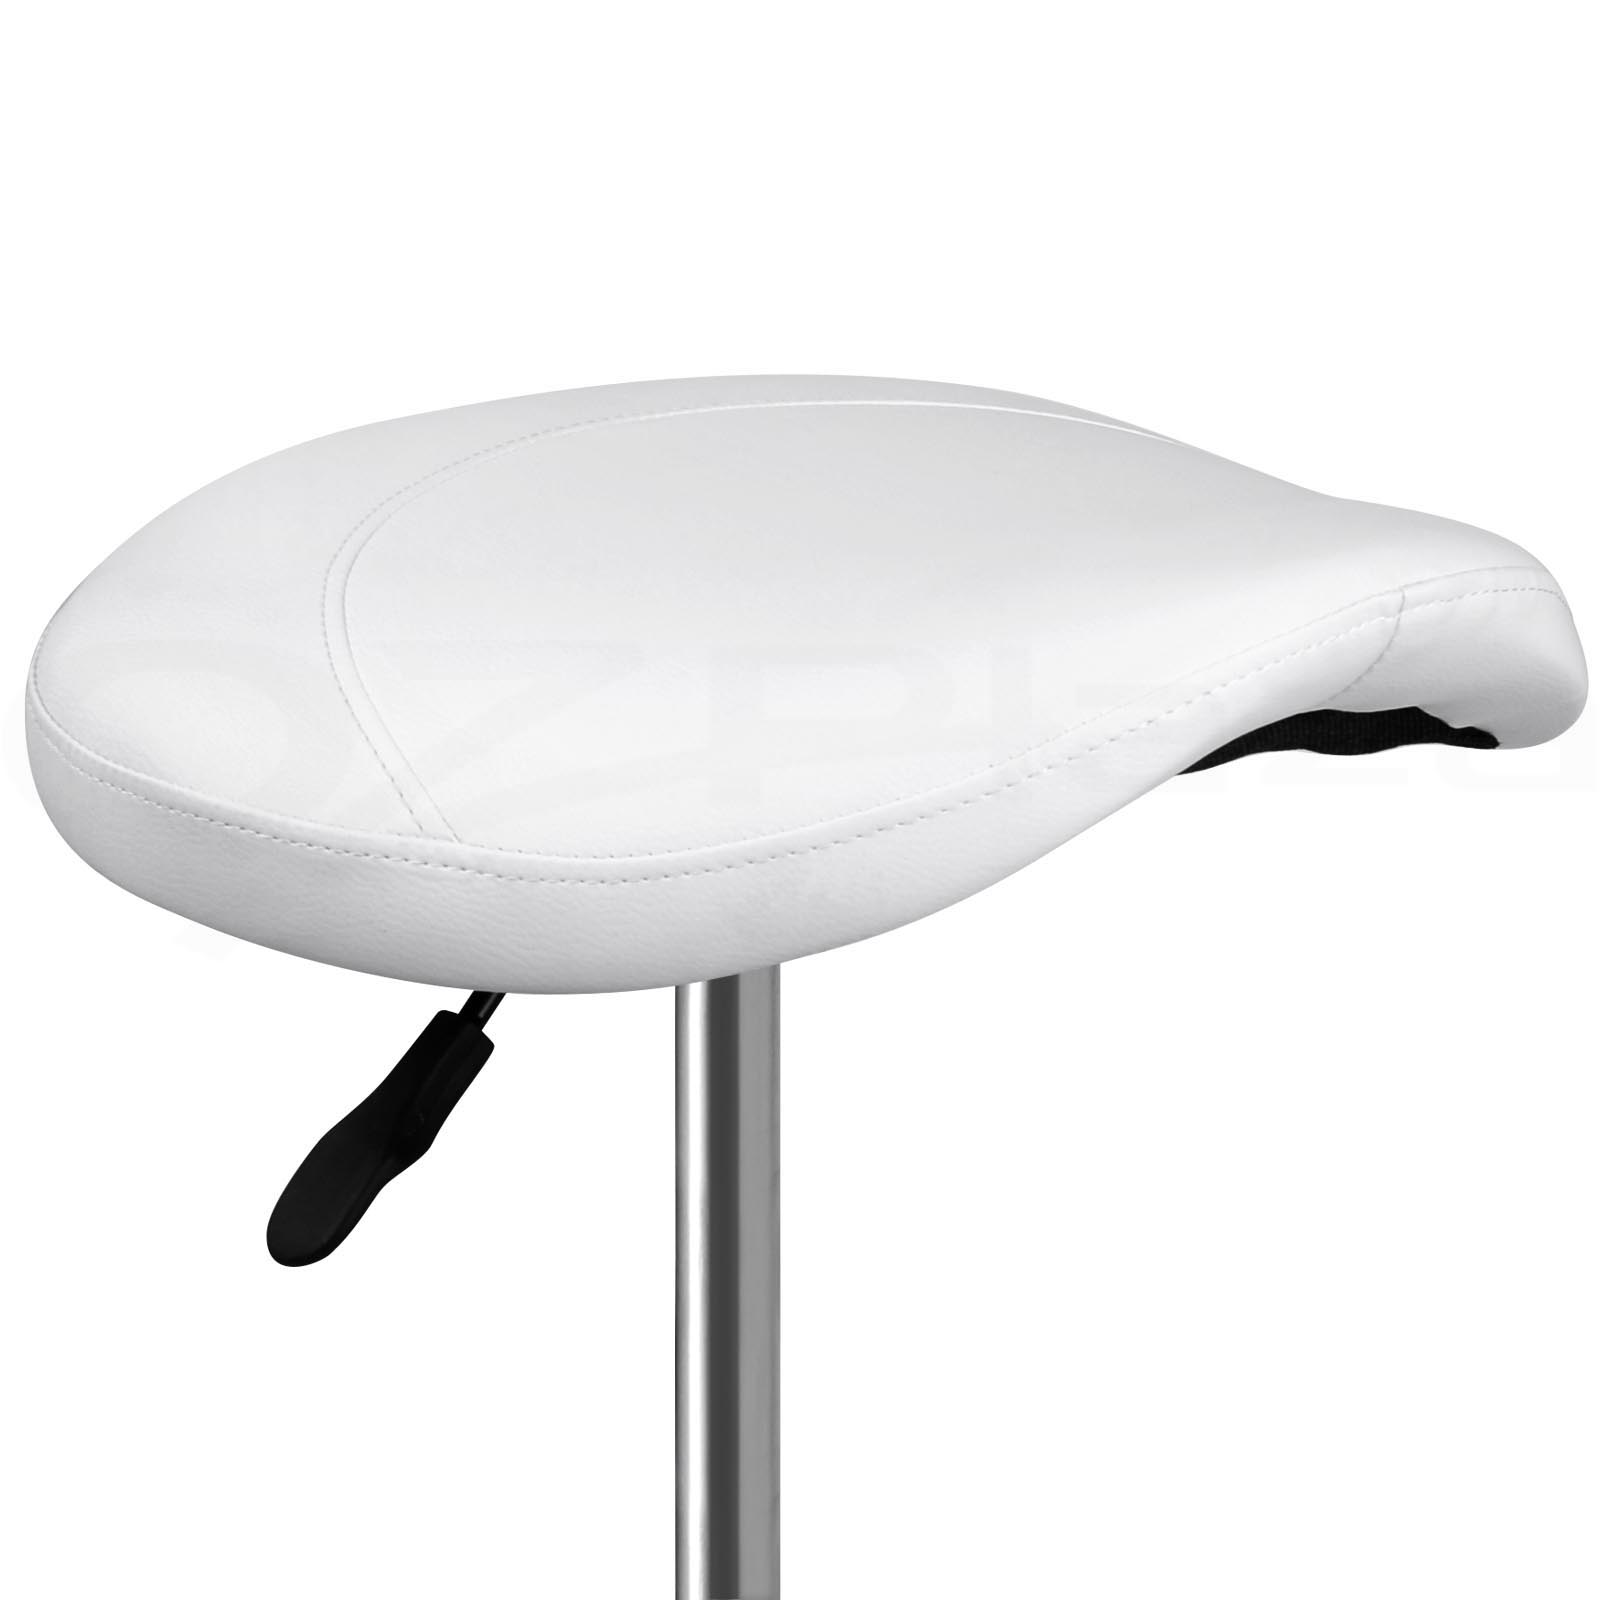 white hair styling chairs oversized saucer chair target saddle salon stool pu swivel barber dress